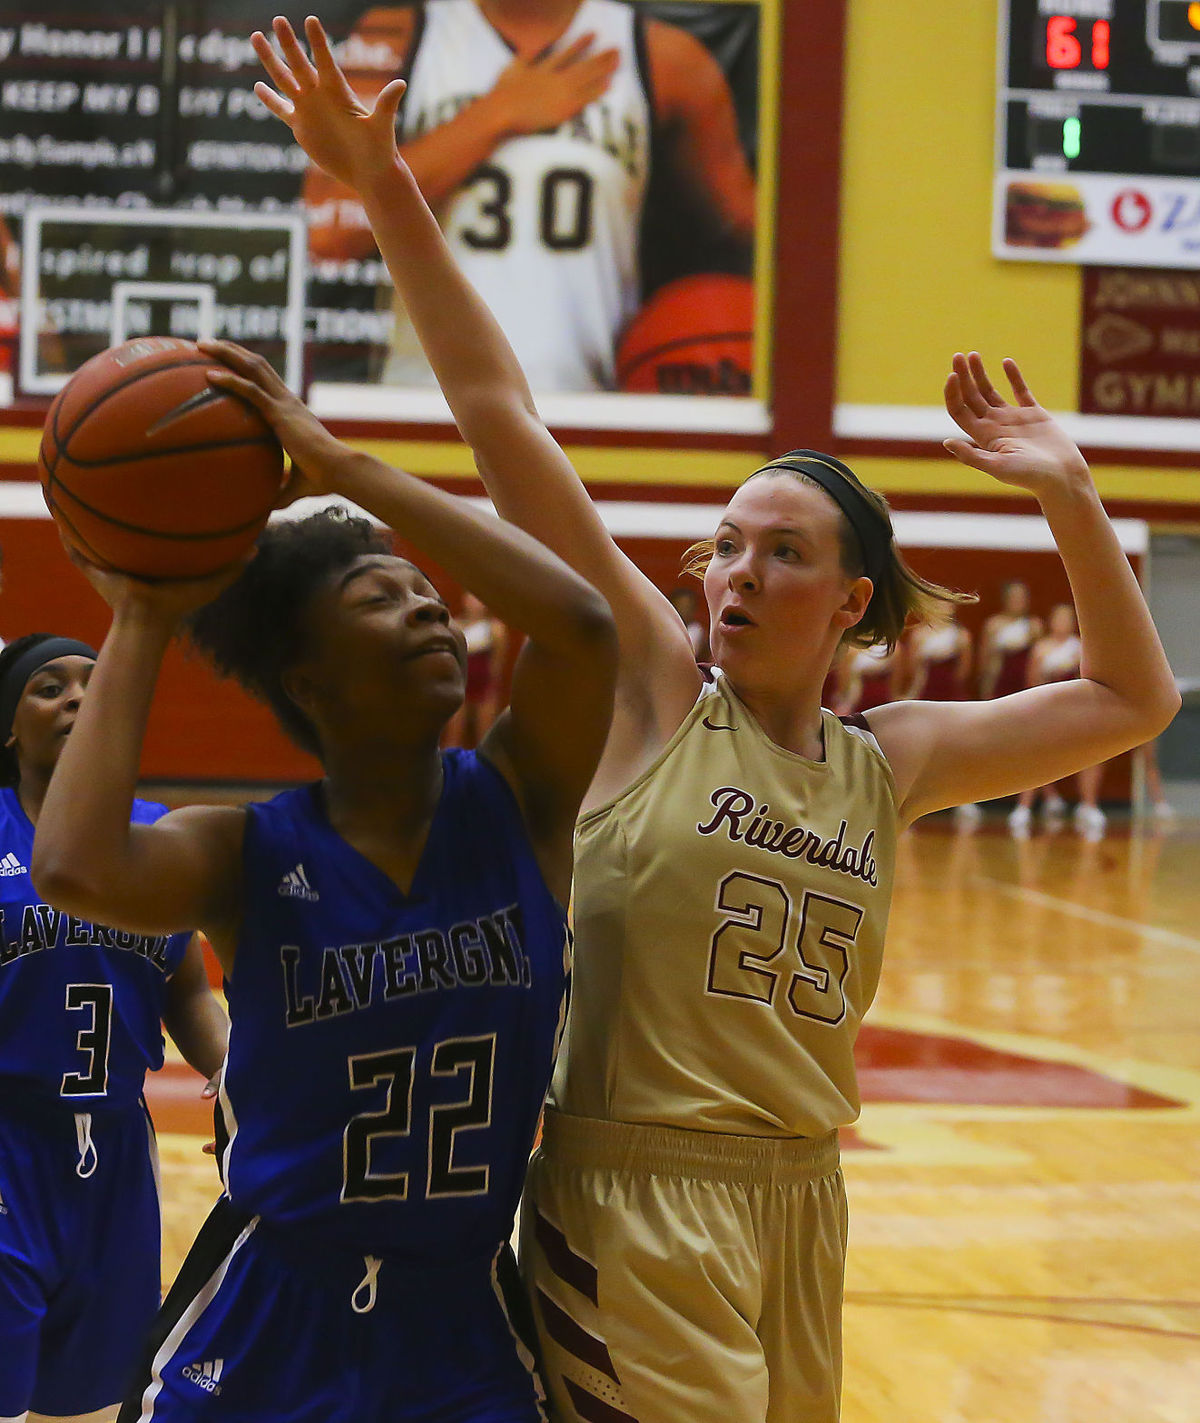 Riverdale takes two district games from La Vergne